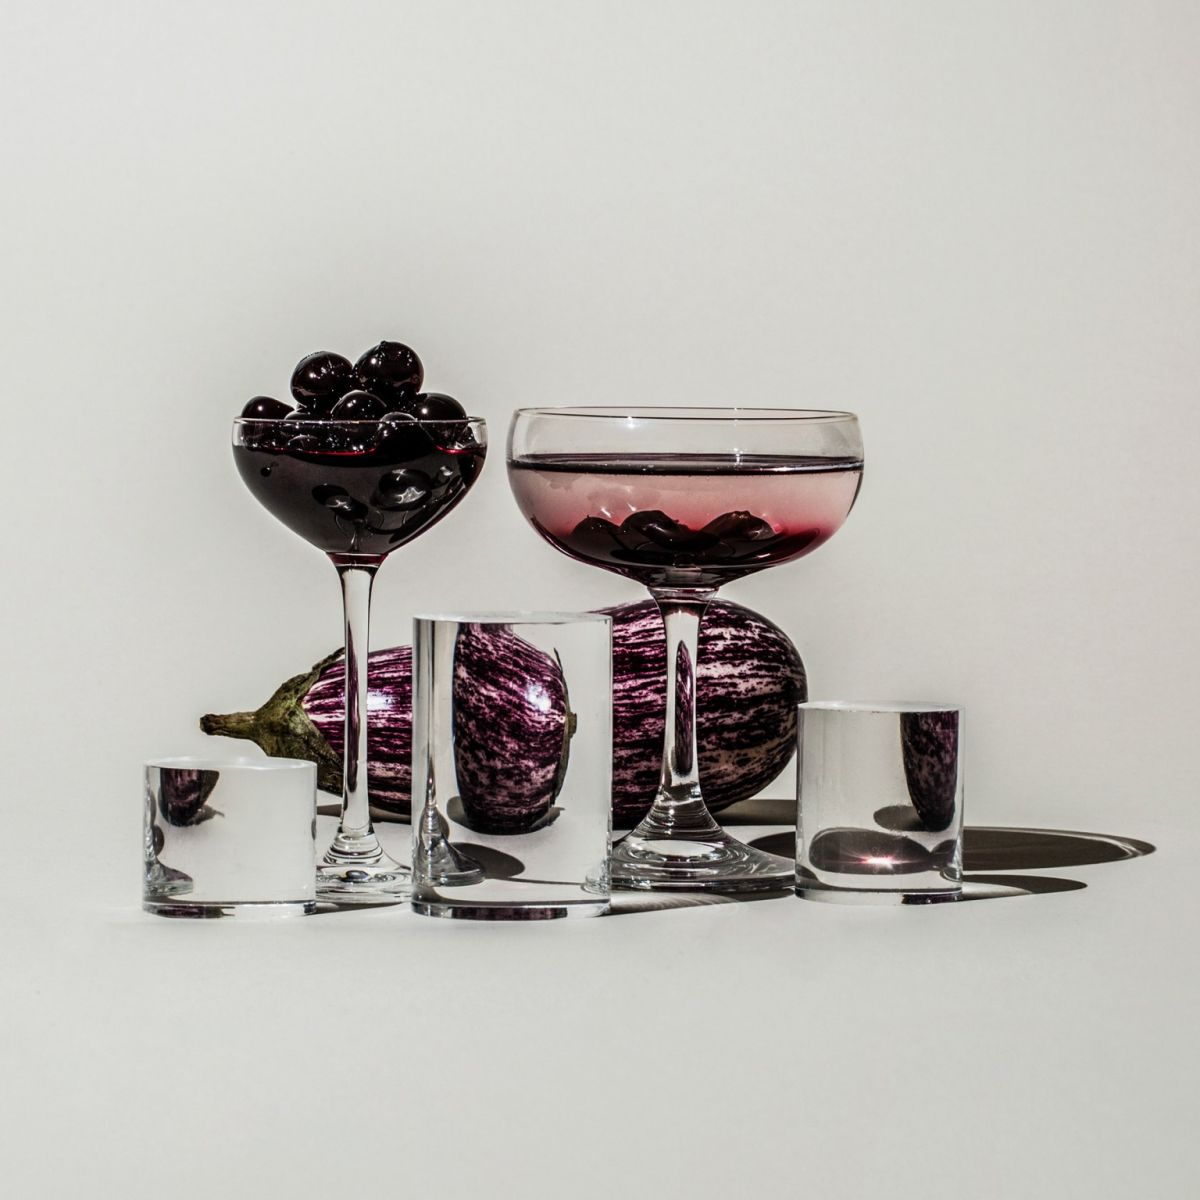 still life photography reflection by suzanne saroff